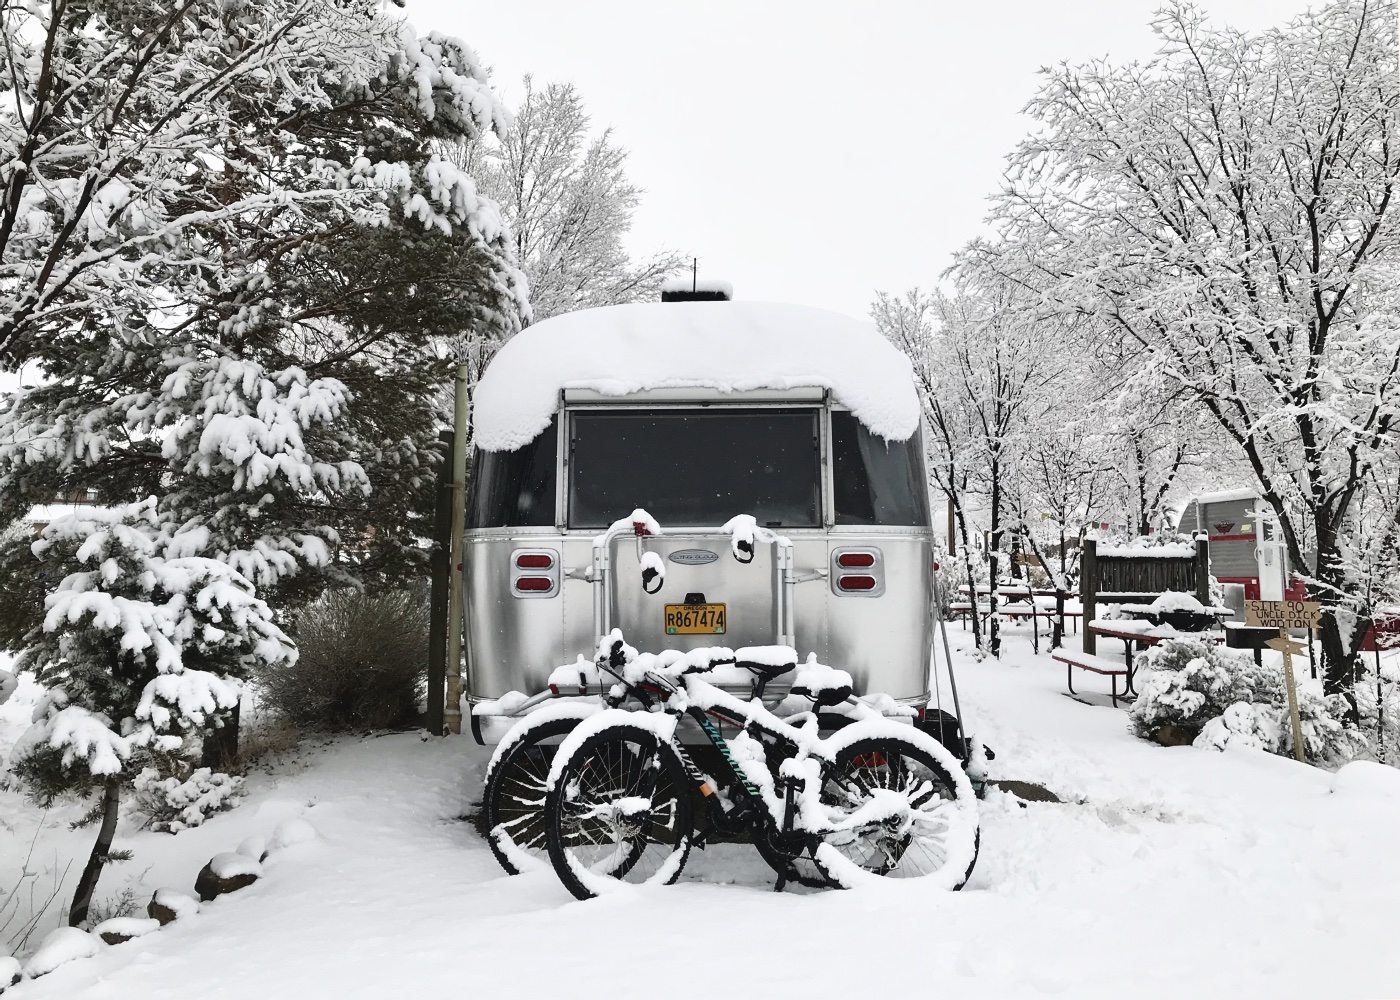 Northern New Mexico got dumped on this winter! This is what our RV park looked like after the 4th or 5th storm of the season.